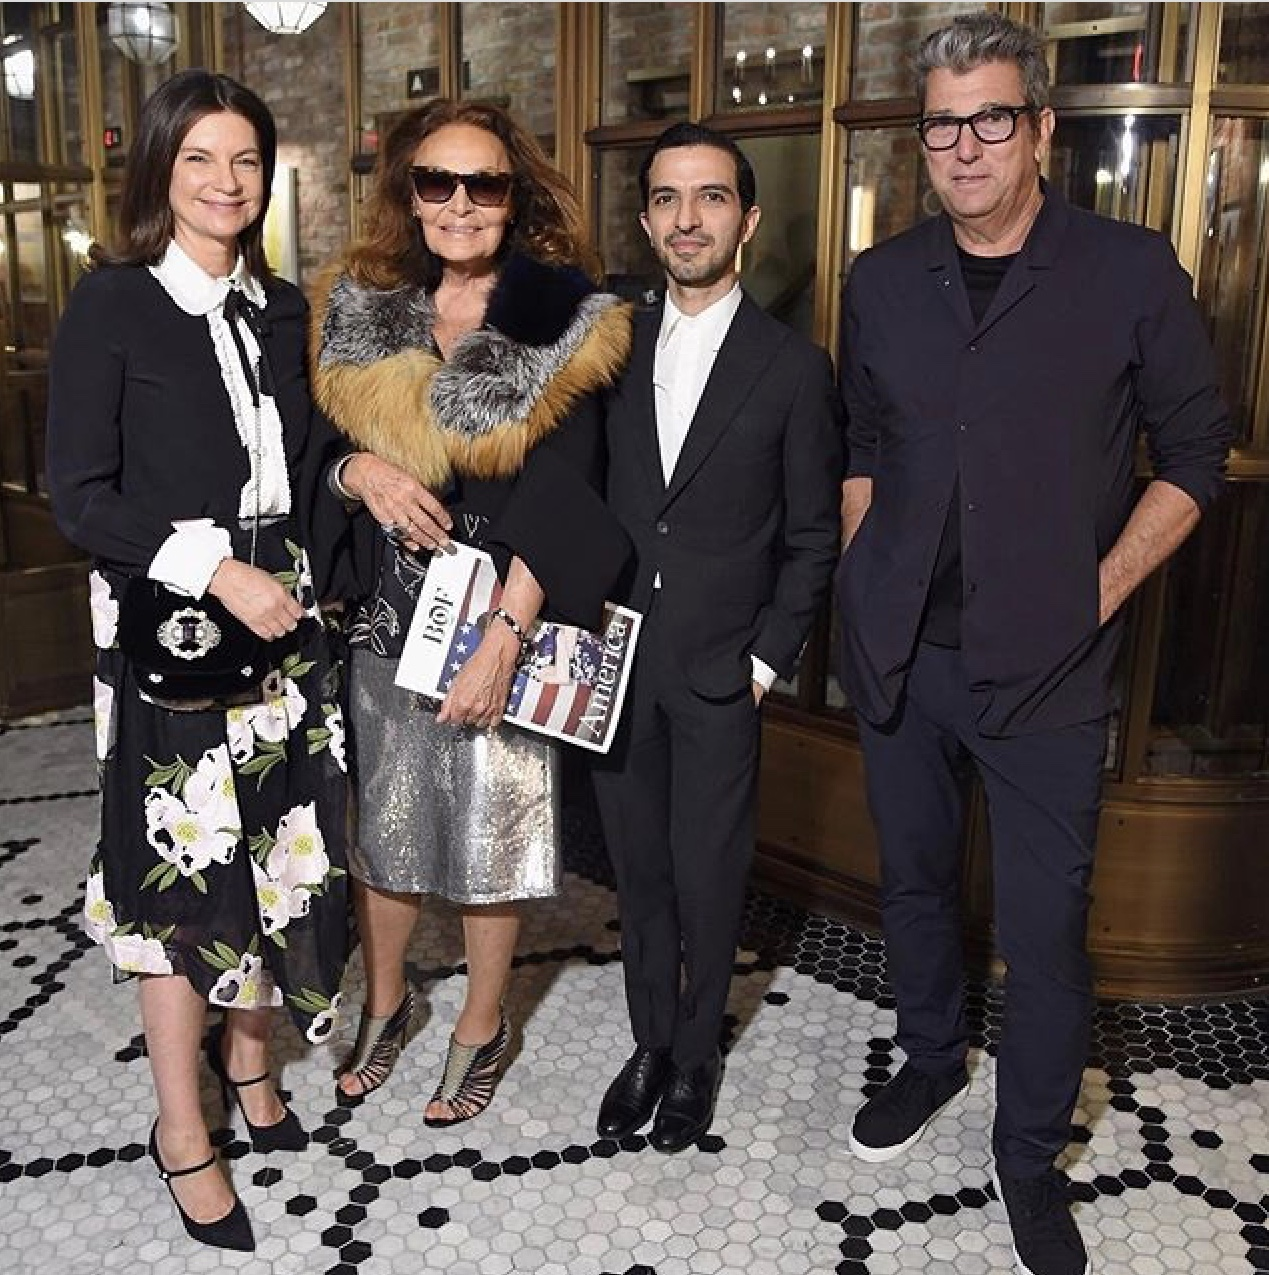 Dame Natalie Massenet, Diane Von Furstenburg, Imran Amed and Theory Chief Executive Andrew Rosen pictured in New York to celebrate the launch of BoF's American themed print edition / Photo: @bof